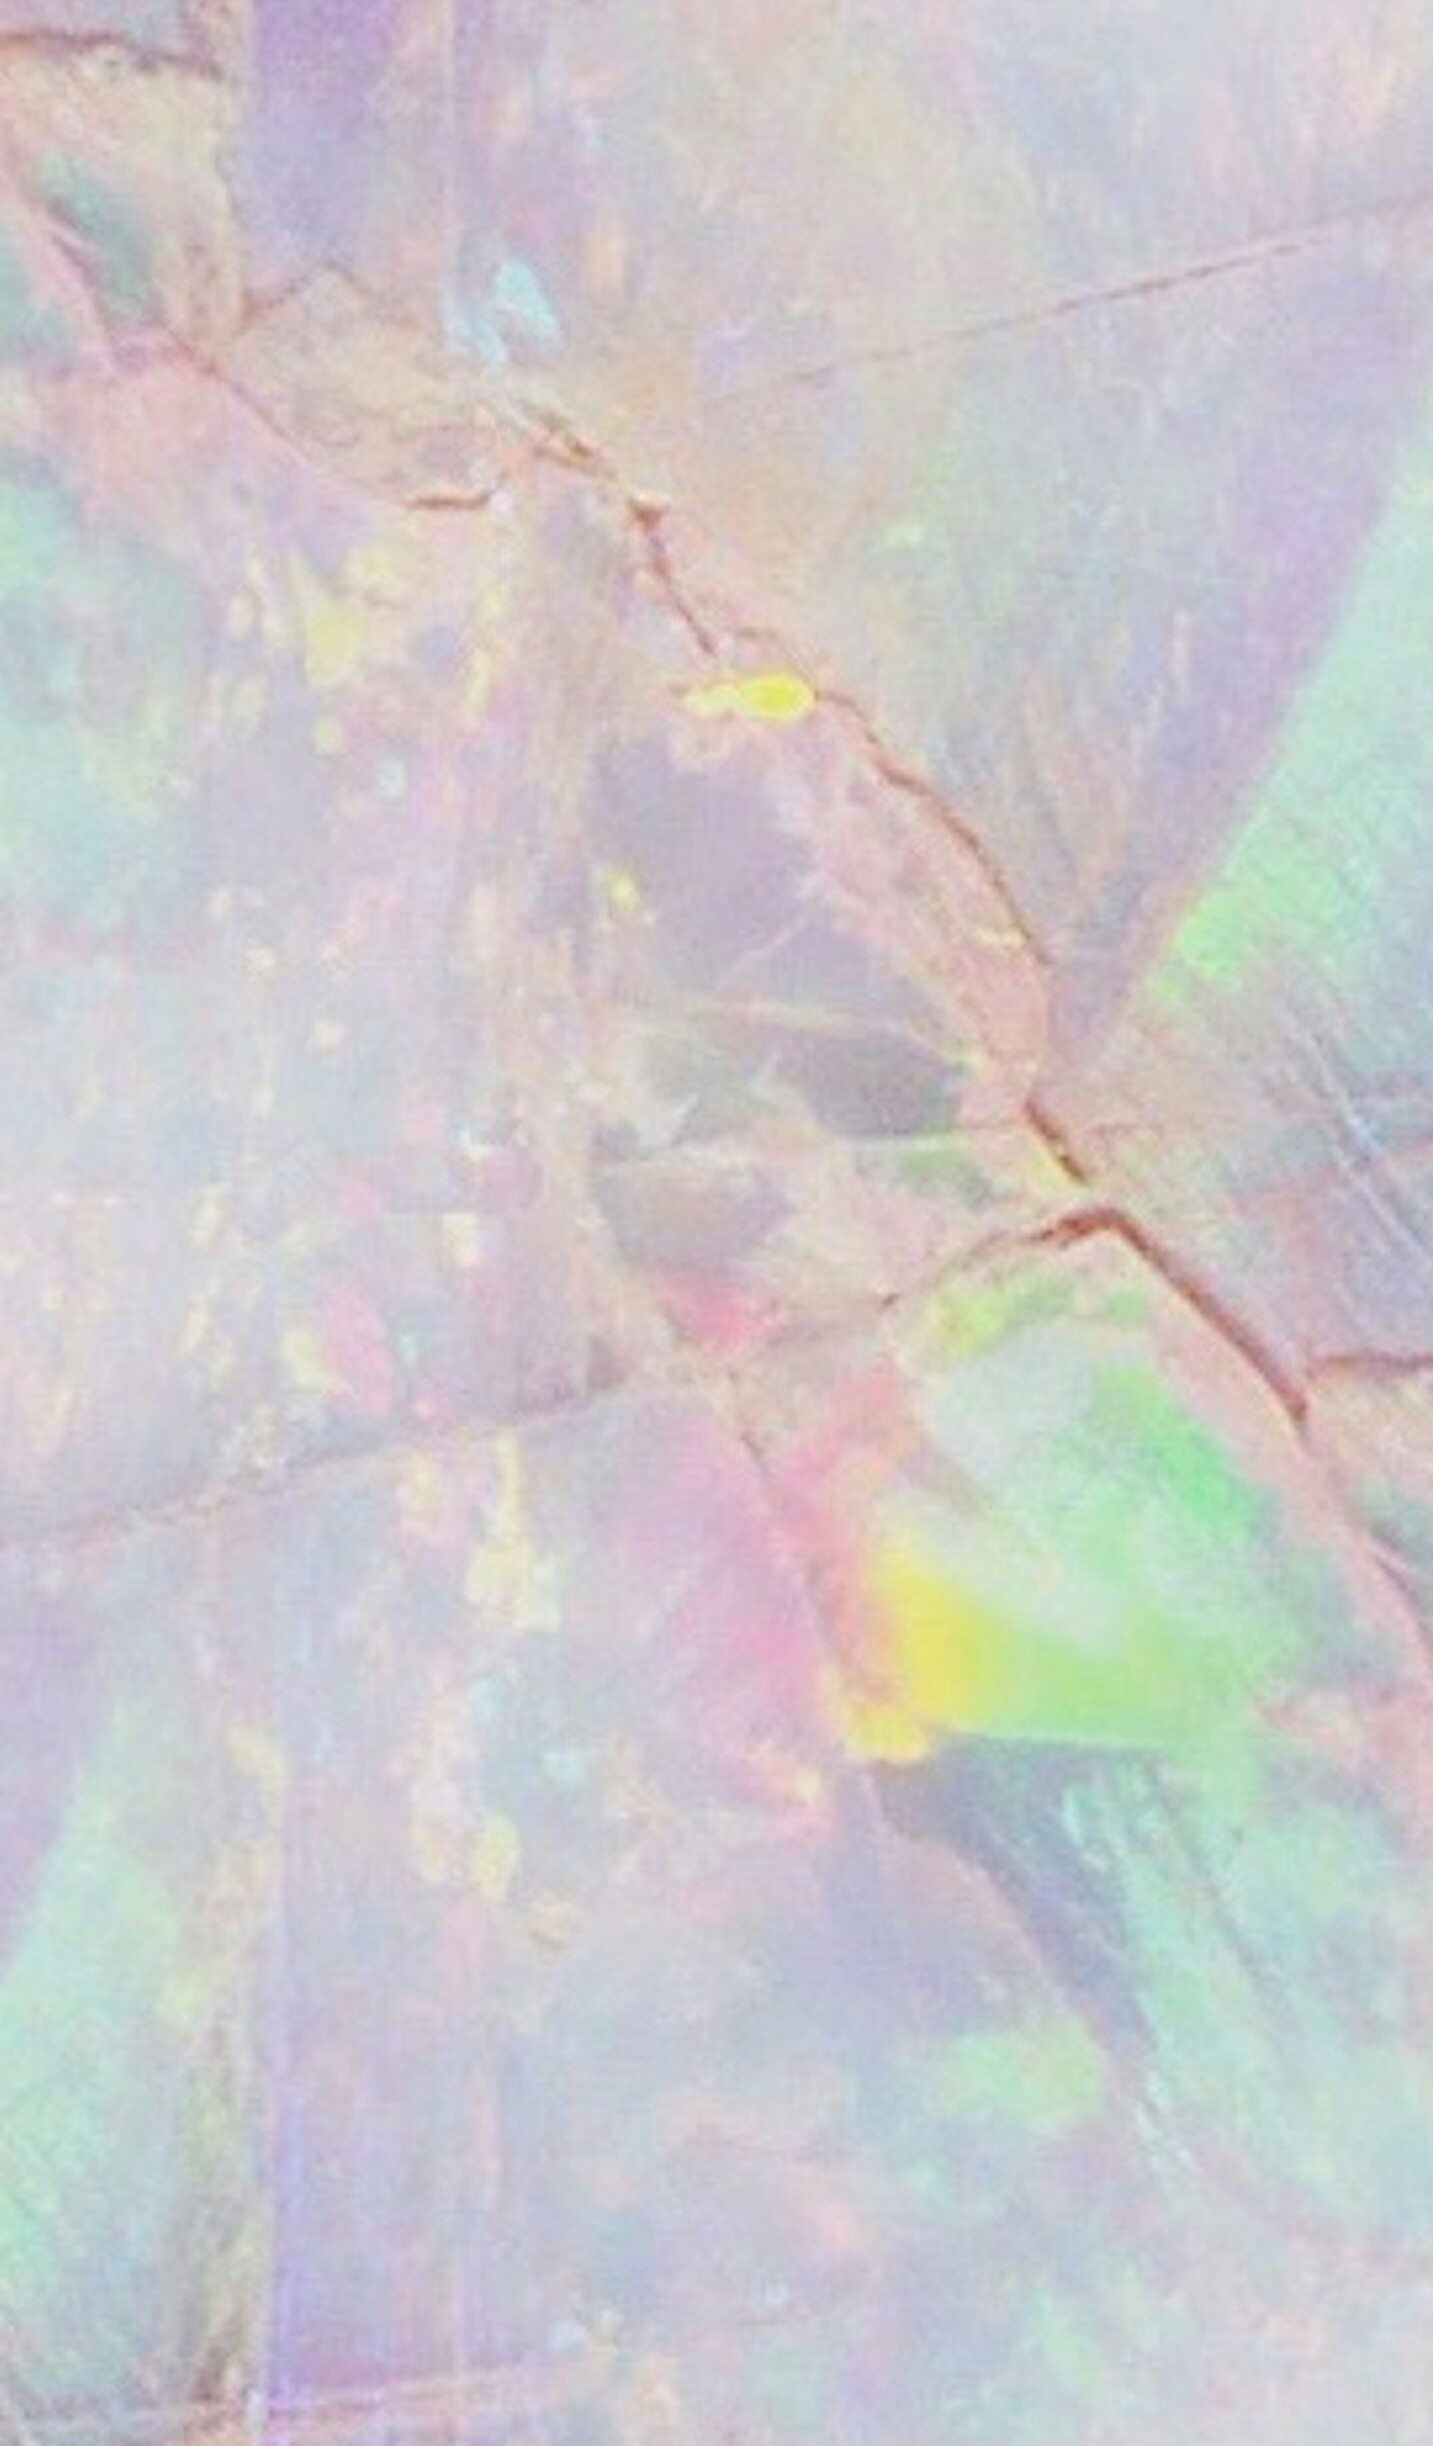 Colorful & textured marble wallpaper